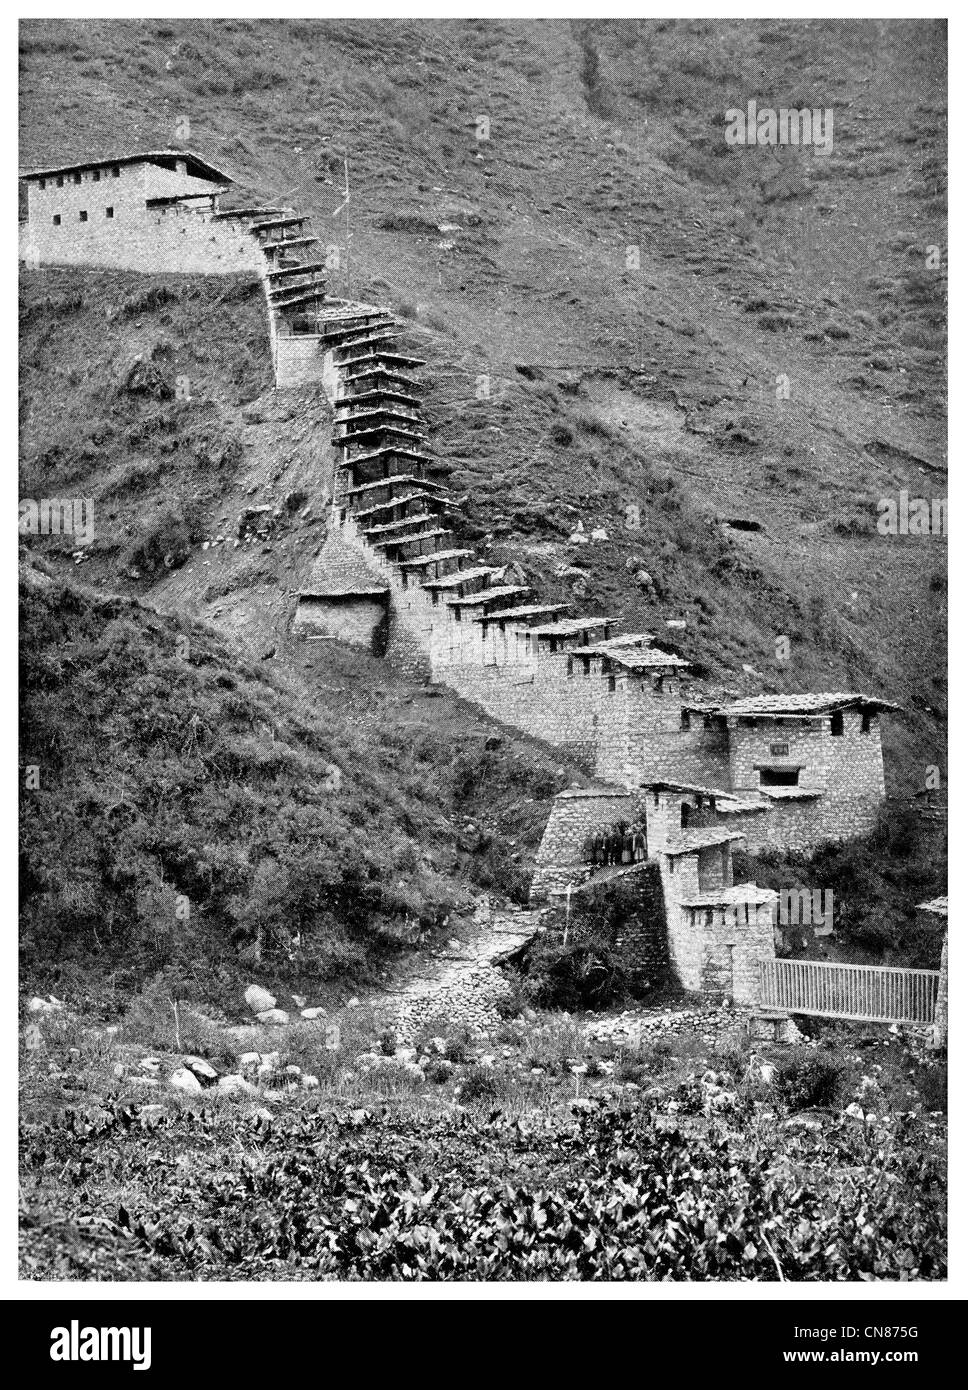 First published 1916 Wall fortification fort at Yatung In Tibet - Stock Image